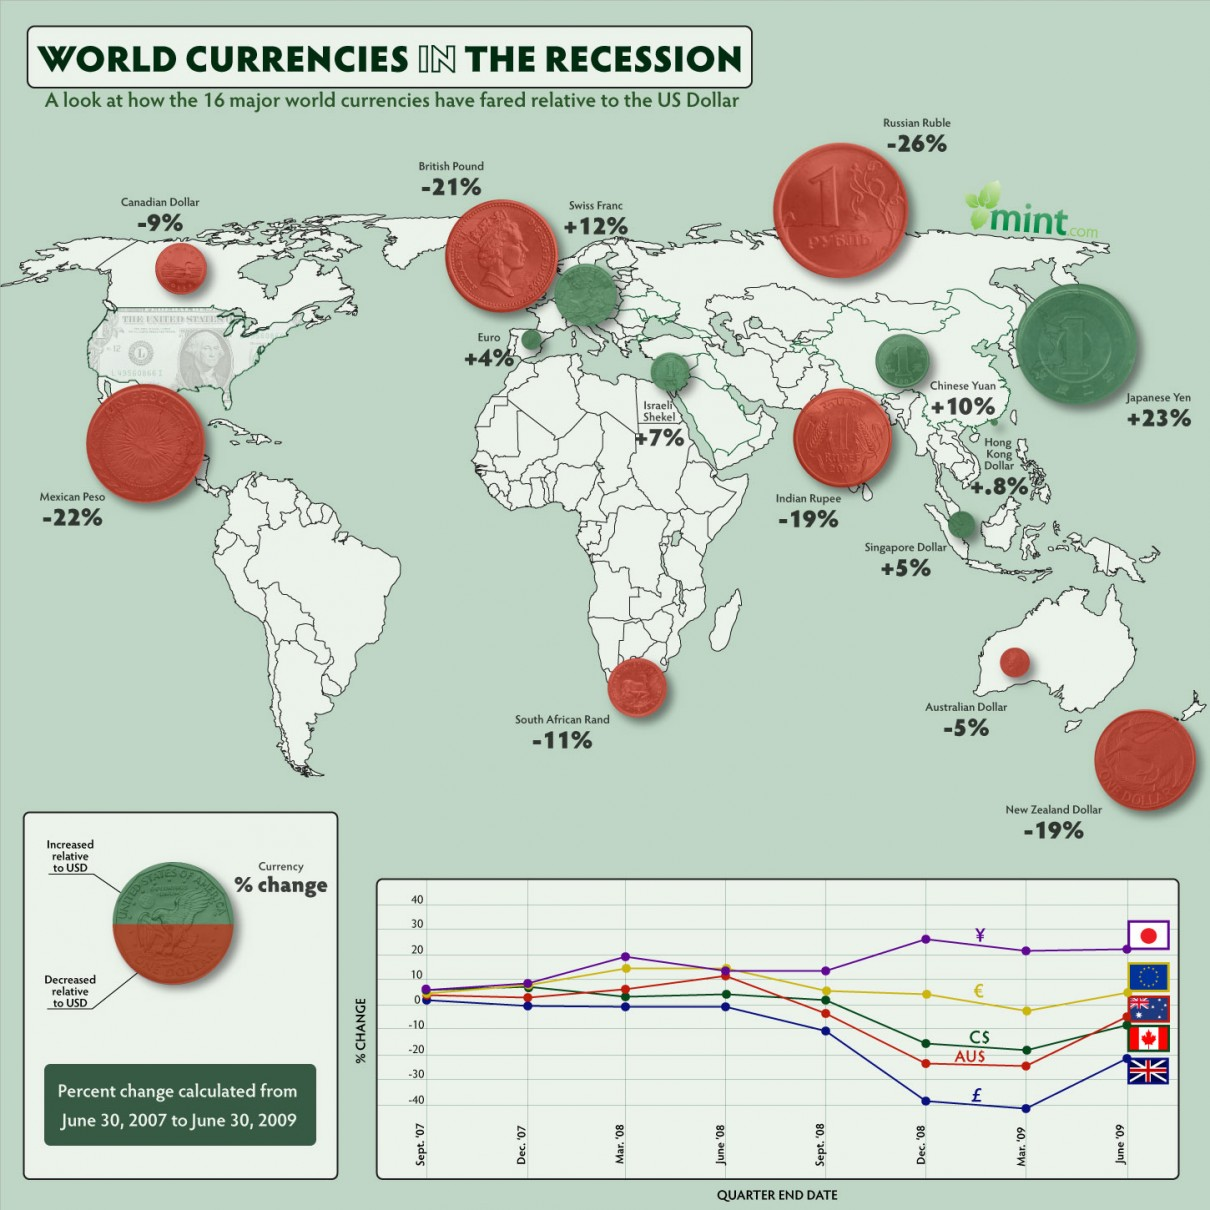 Popular currencies